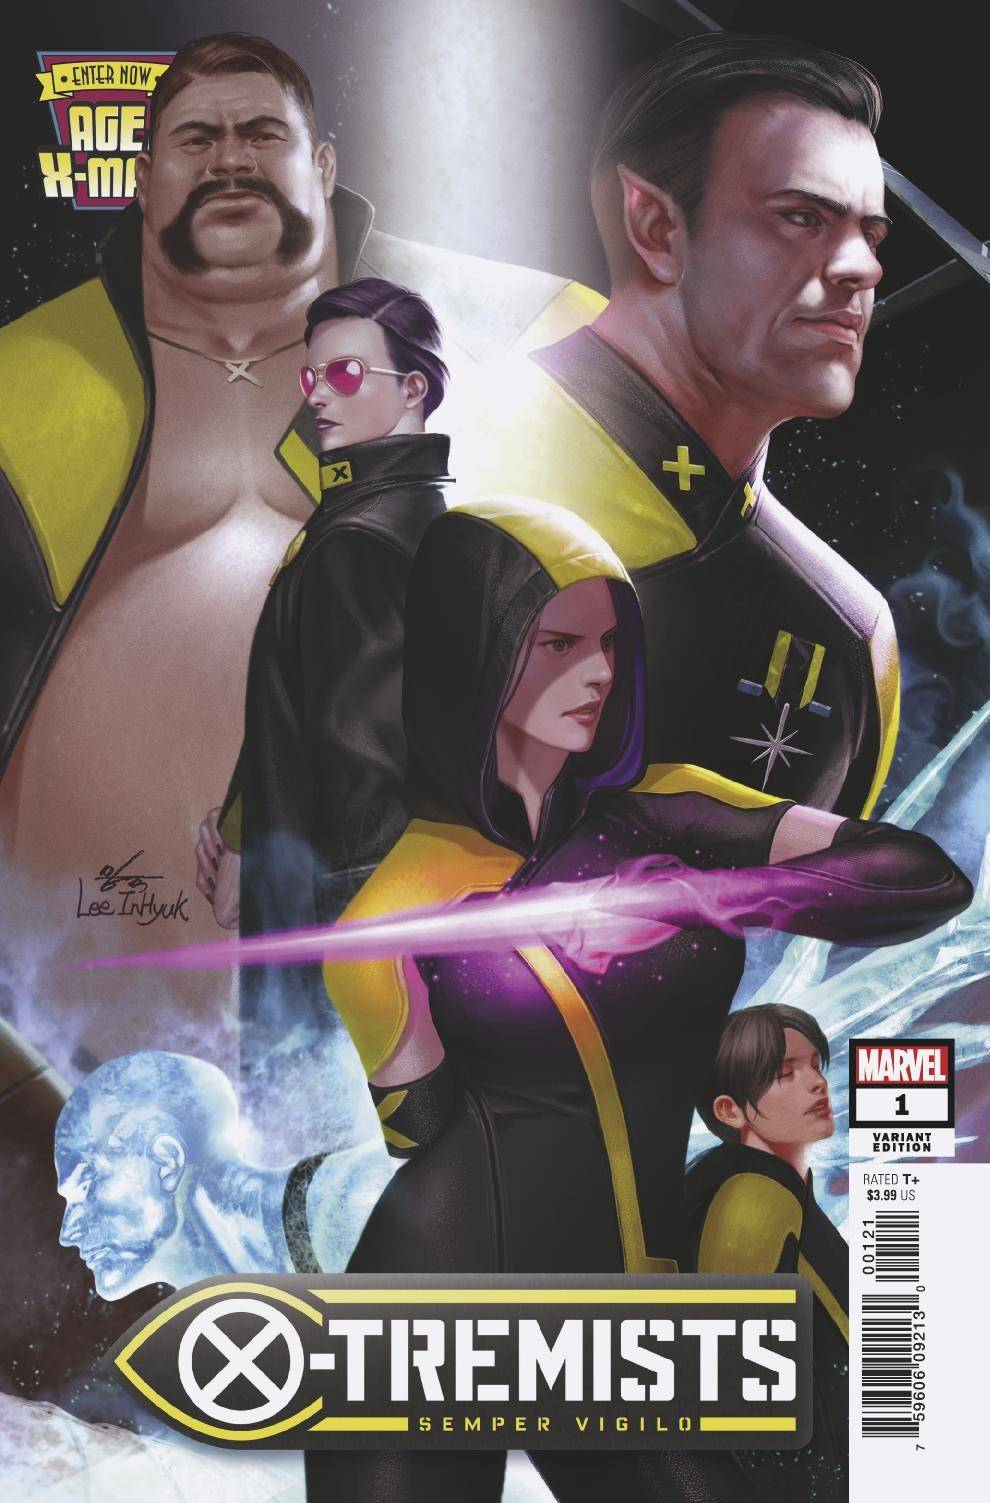 AGE OF X-MAN X-TREMISTS #1 (OF 5) INHYUK LEE CONNECTING VARIANT 02/27/19 FOC 02/4/19